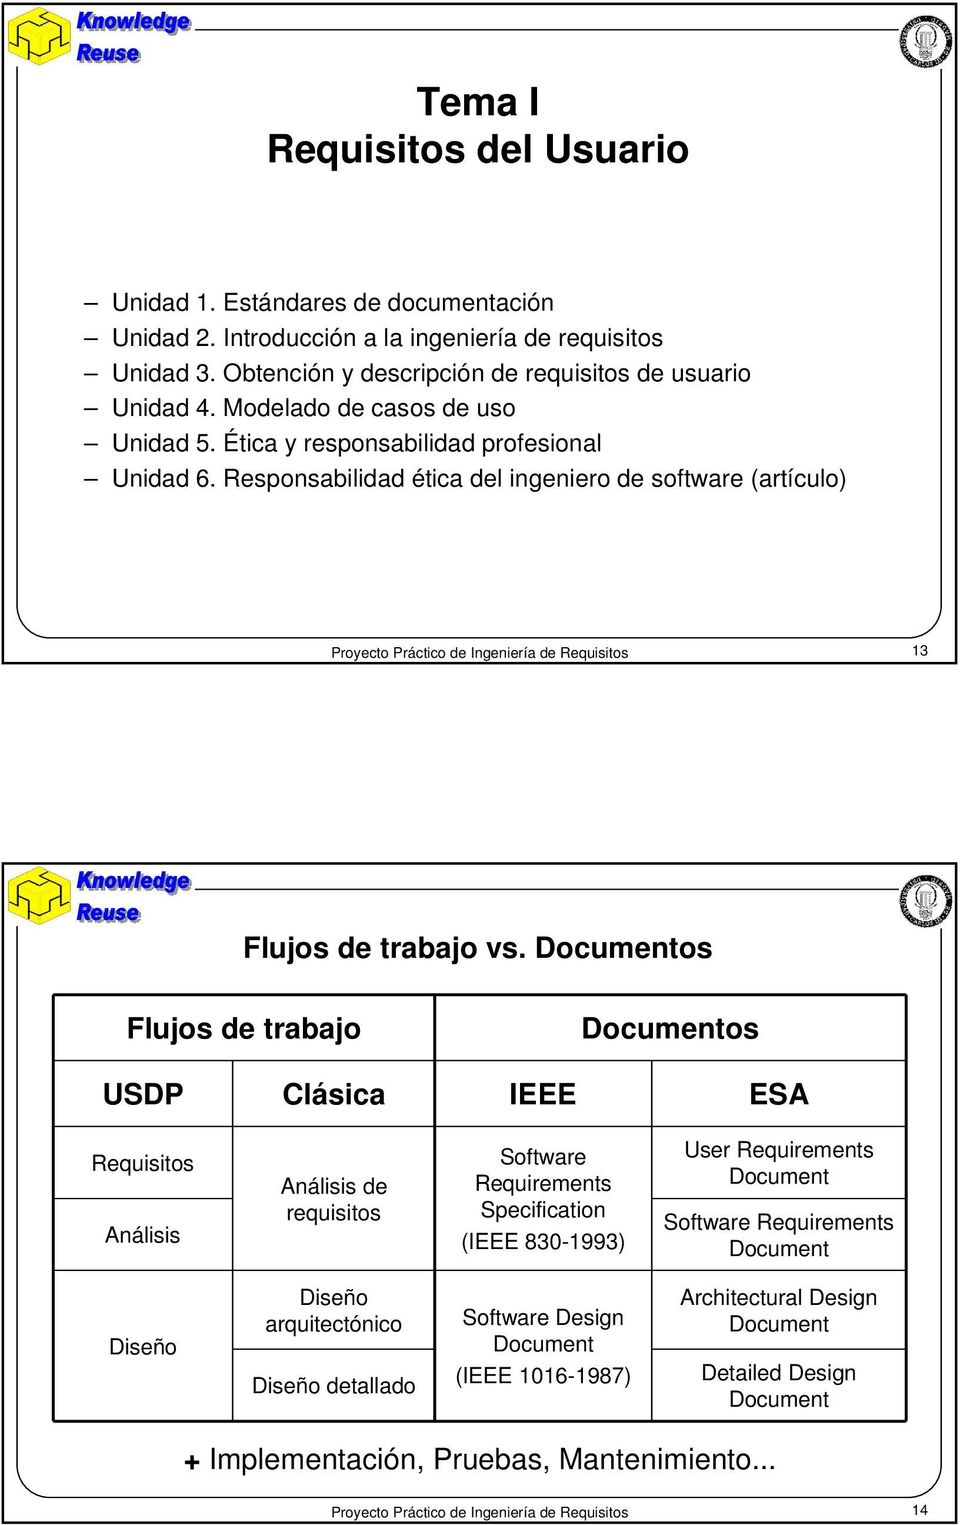 Documentos Flujos de trabajo Documentos USDP Clásica IEEE ESA Requisitos Análisis Análisis de requisitos Software Requirements Specification (IEEE 830-1993) User Requirements Document